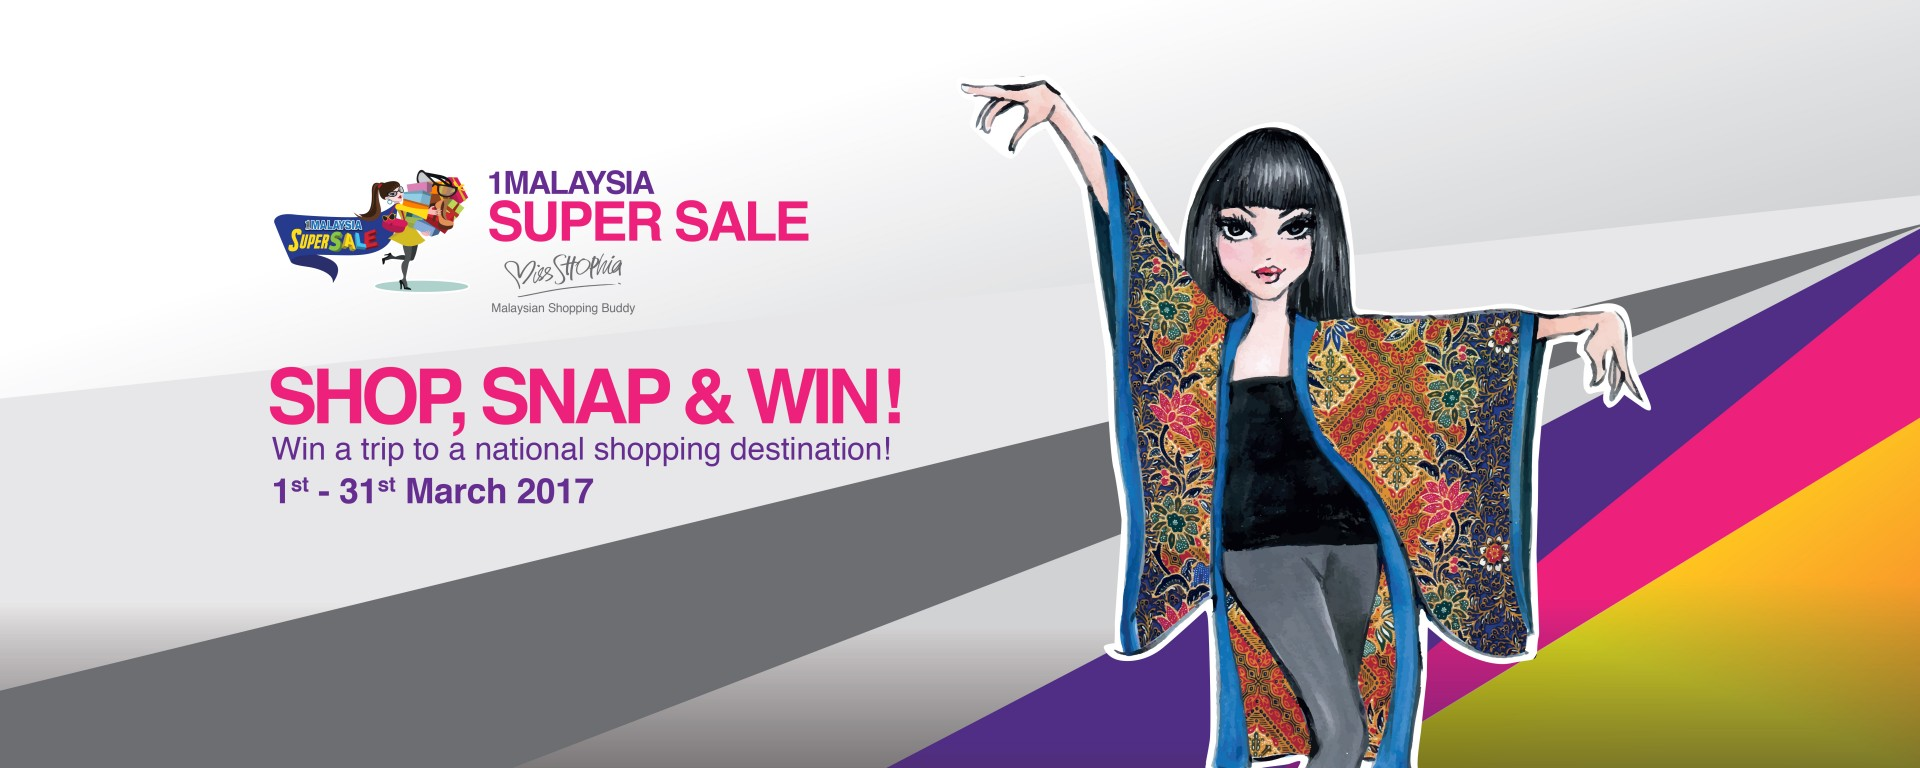 <div class='action'><a href='http://missshophia.malaysia.travel' class='btn btn-danger btn-lg'>Find Out More</a></div>